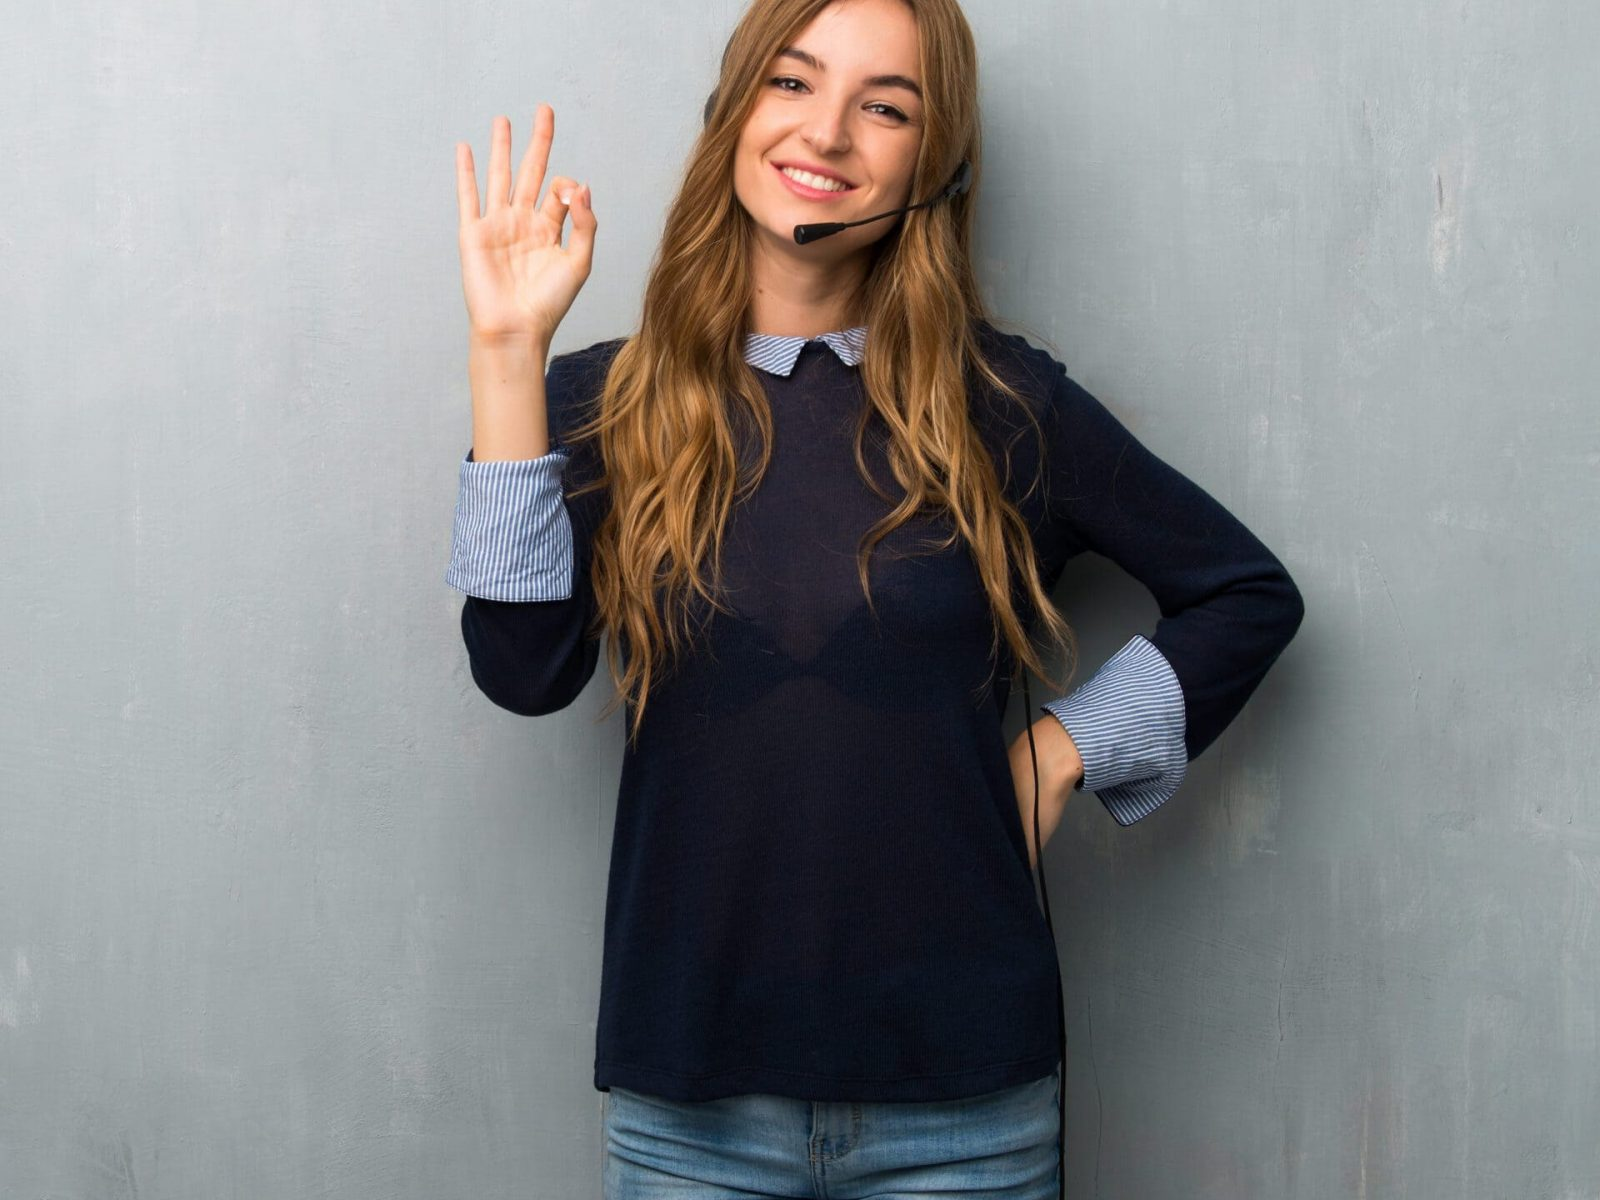 Telemarketer woman showing an ok sign with fingers